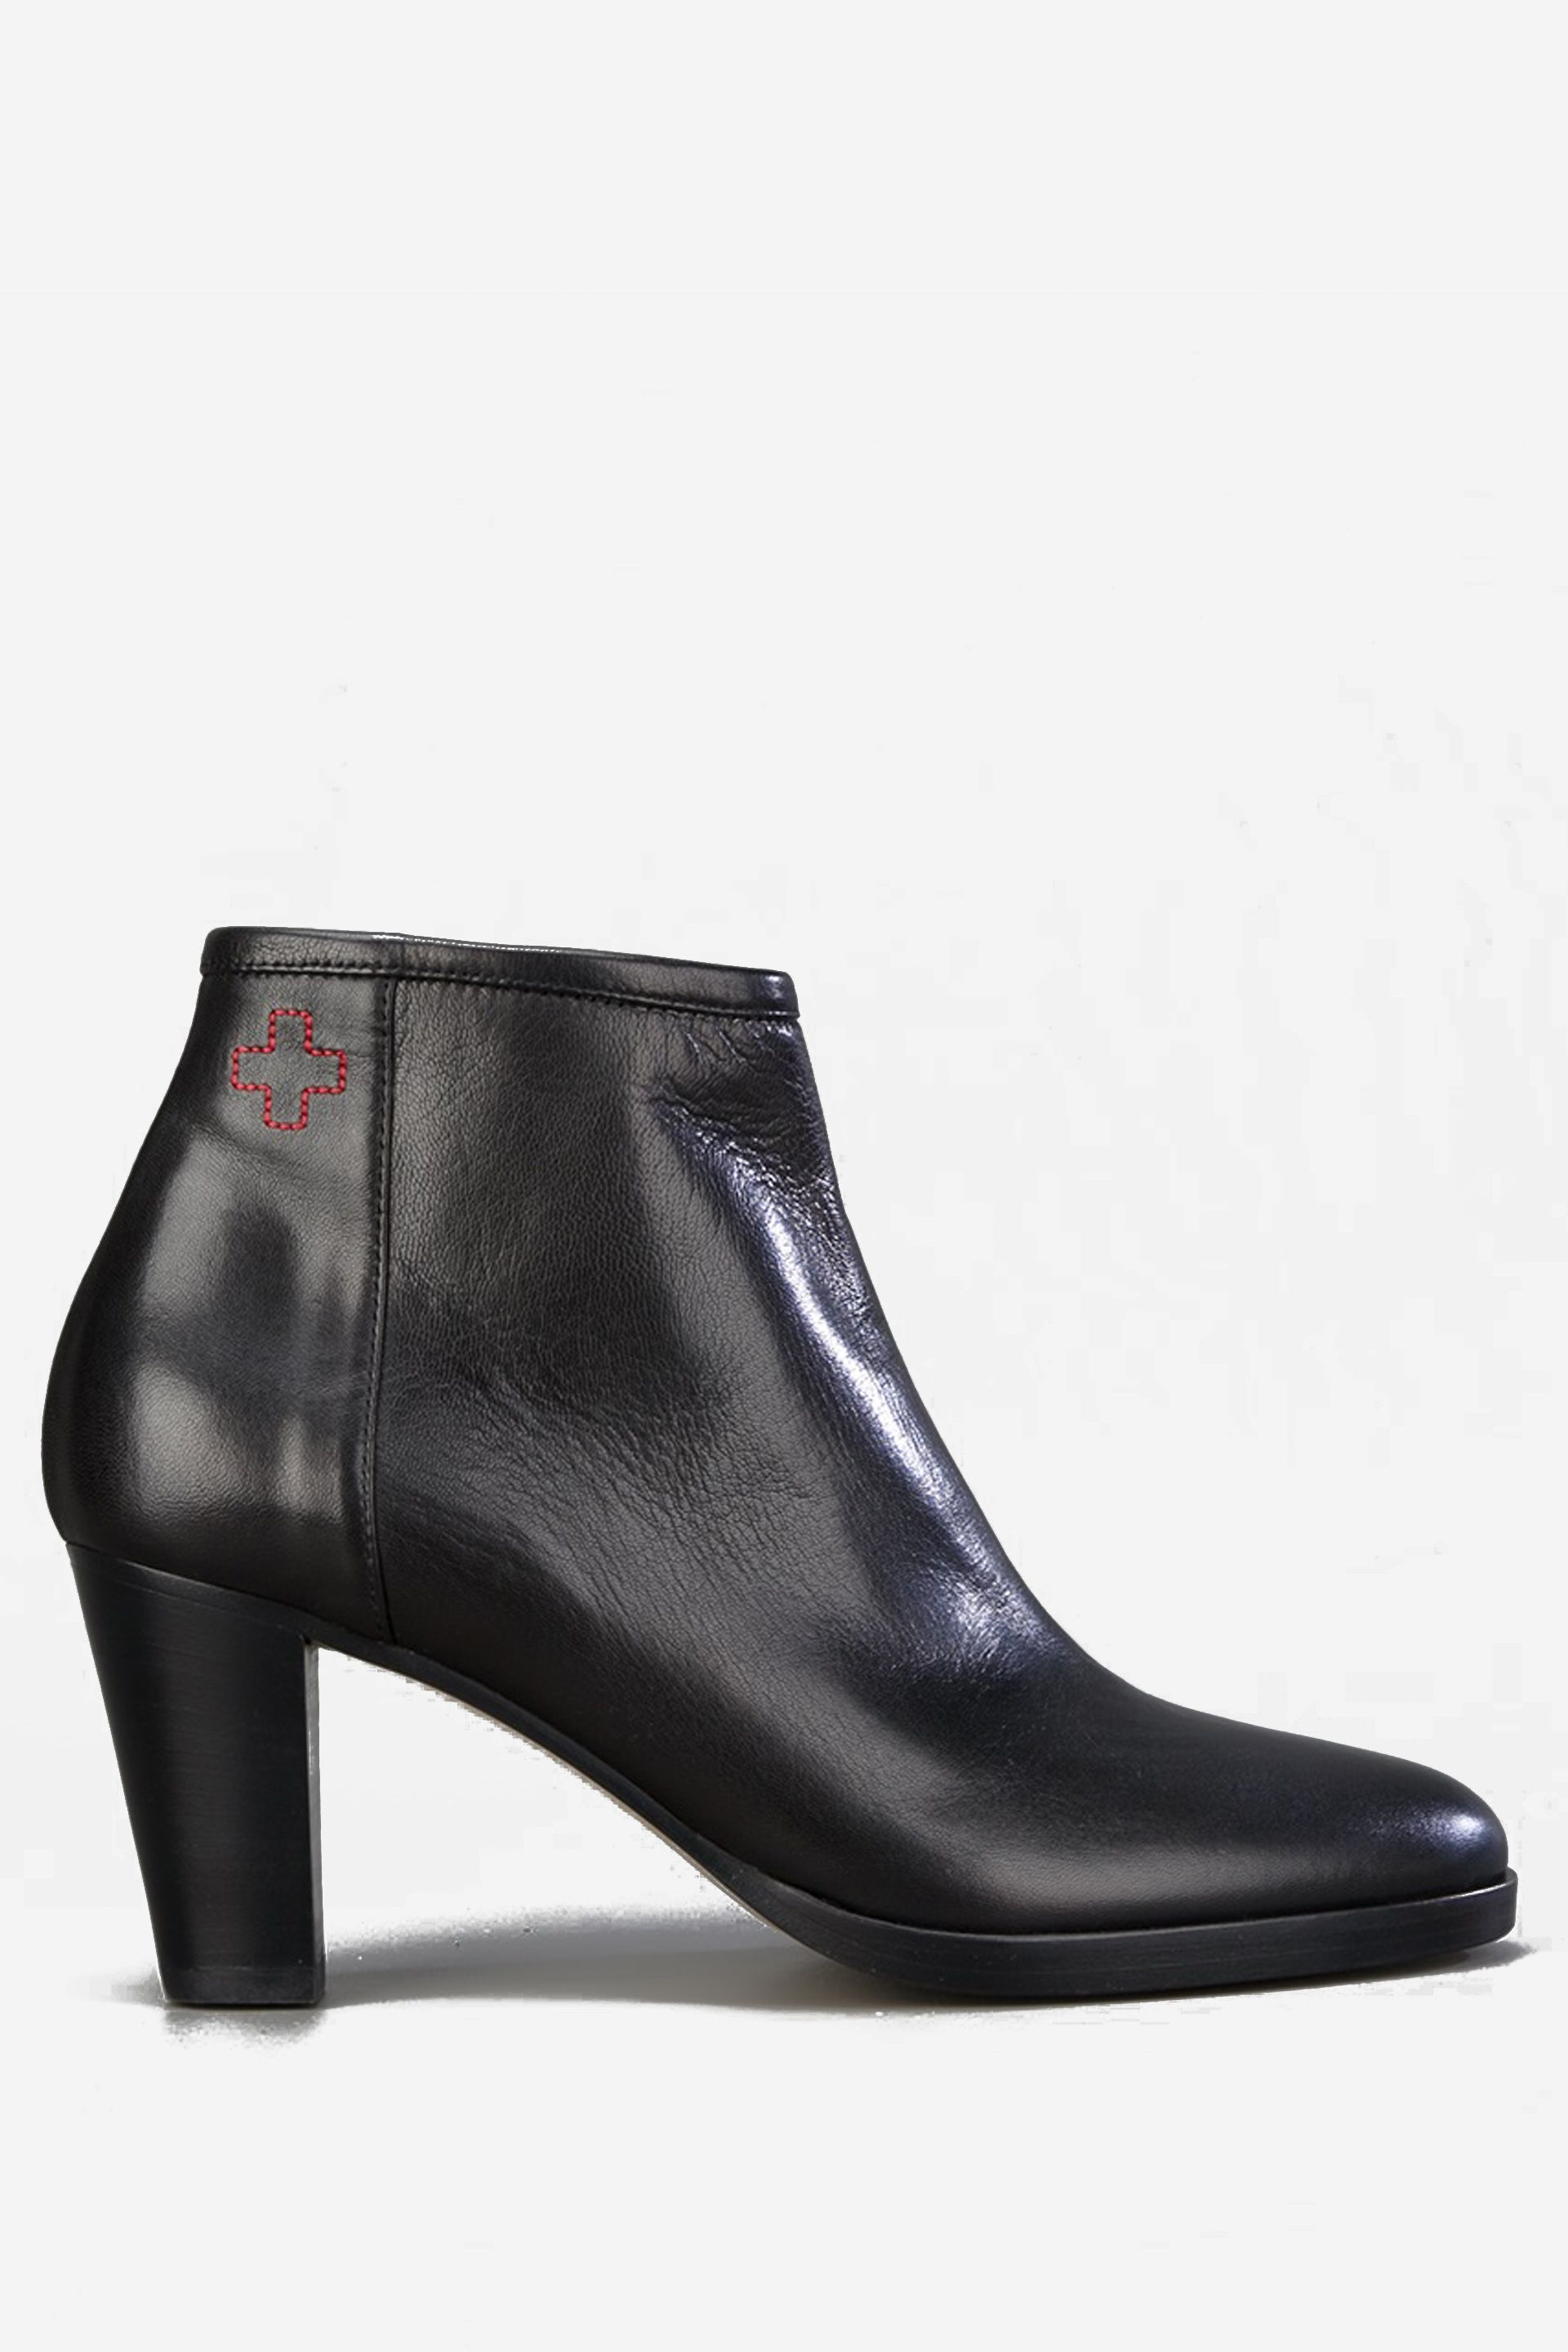 cheap ebay sale visa payment A.F.Vandevorst ankle boots excellent cheap price pay with paypal sale marketable ZdtLwVG